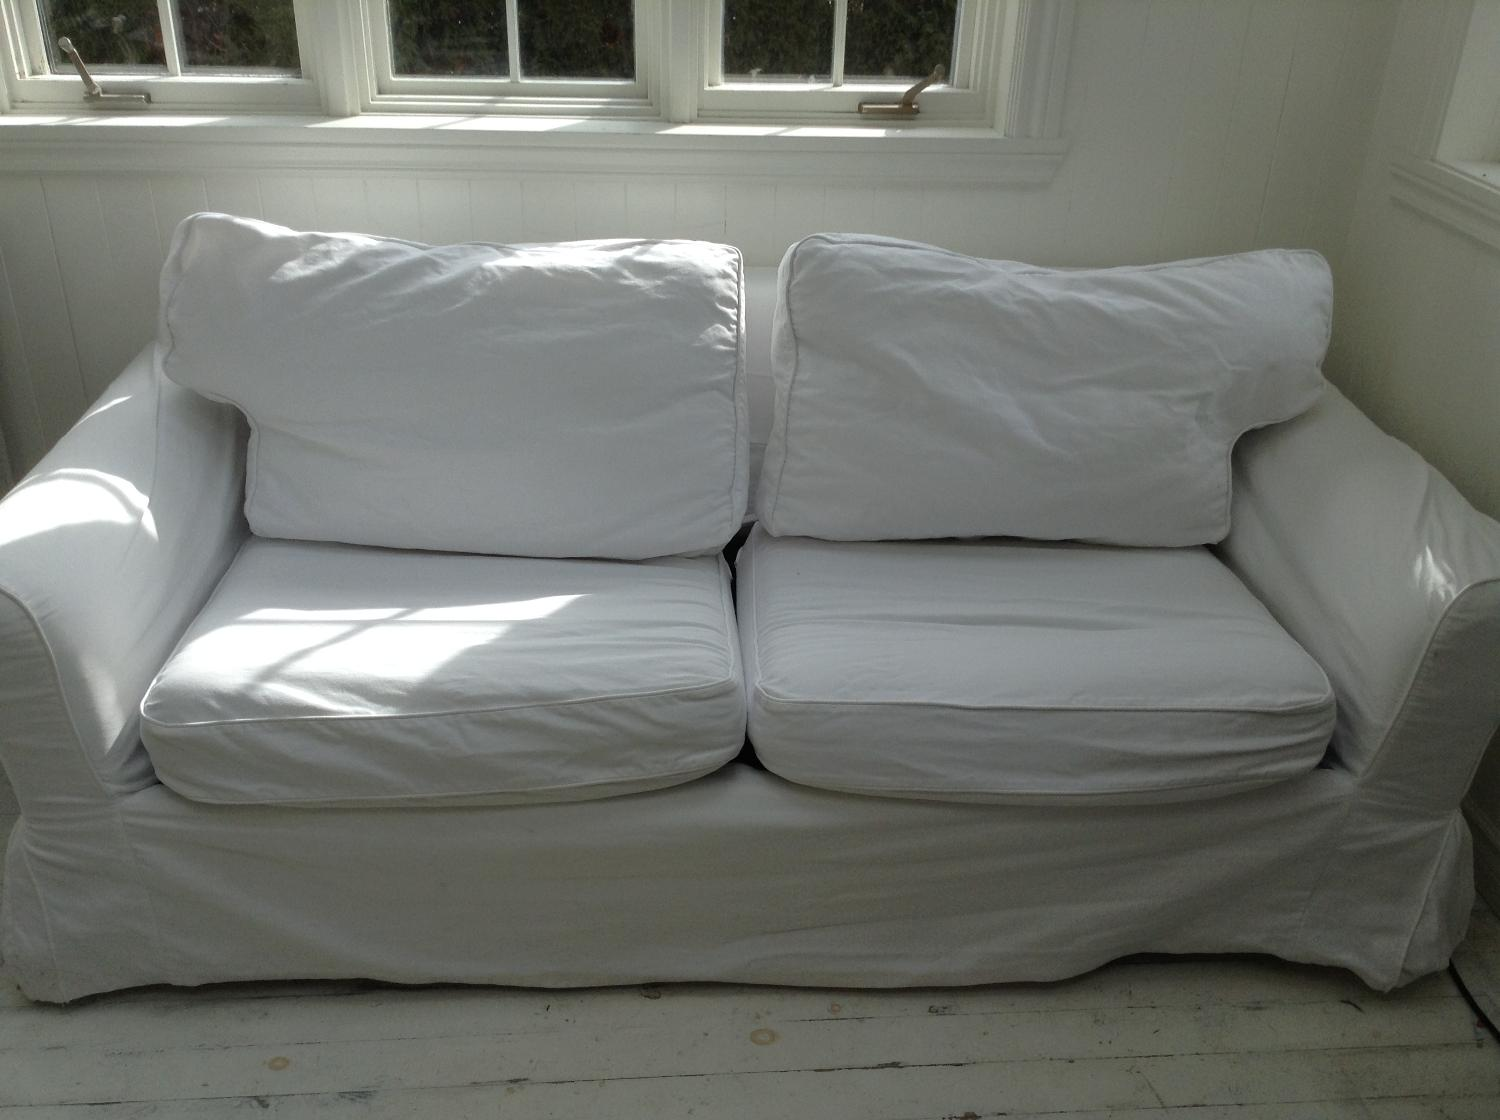 Find More Hide A Bed Sofa For Sale At Up To 90 Off Dollard Des Ormeaux Qc